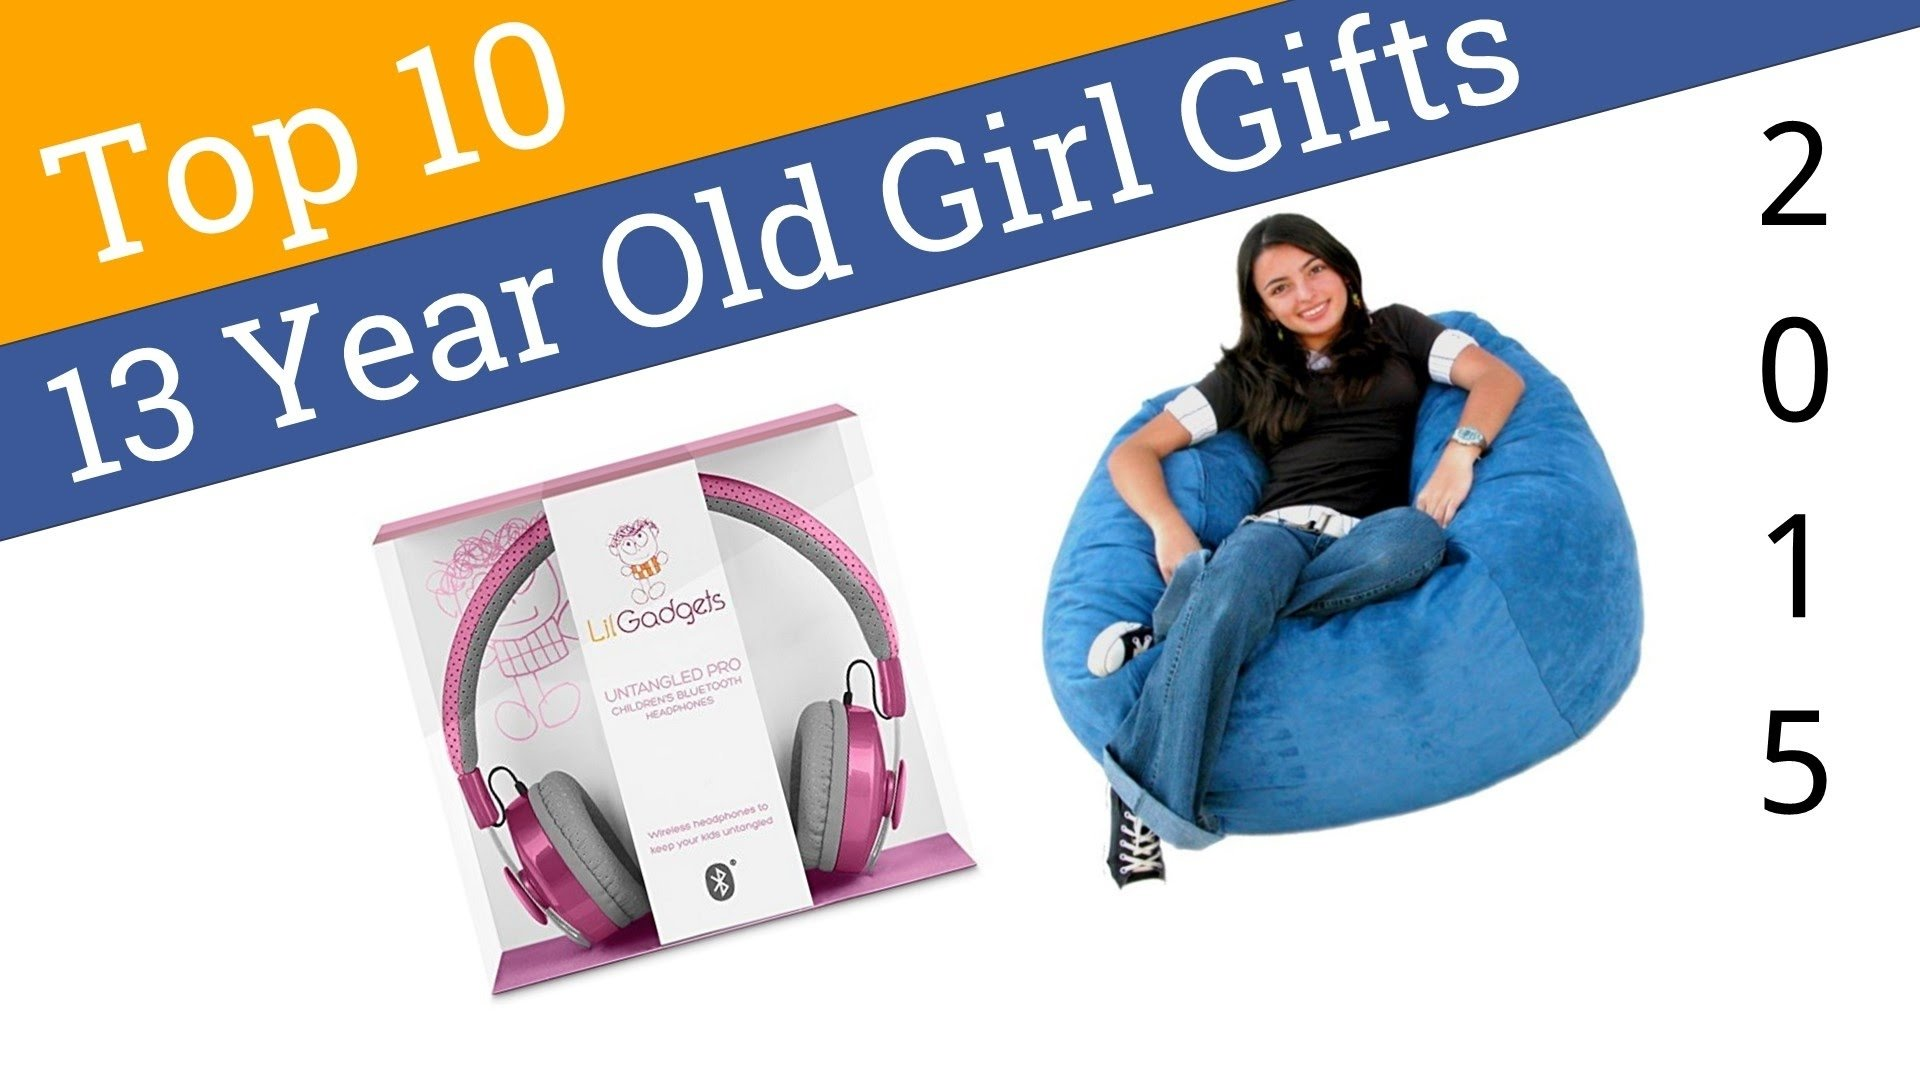 10 Cute Birthday Gift Ideas For 13 Yr Old Girl 10 best 13 year old girl gifts 2015 youtube 2